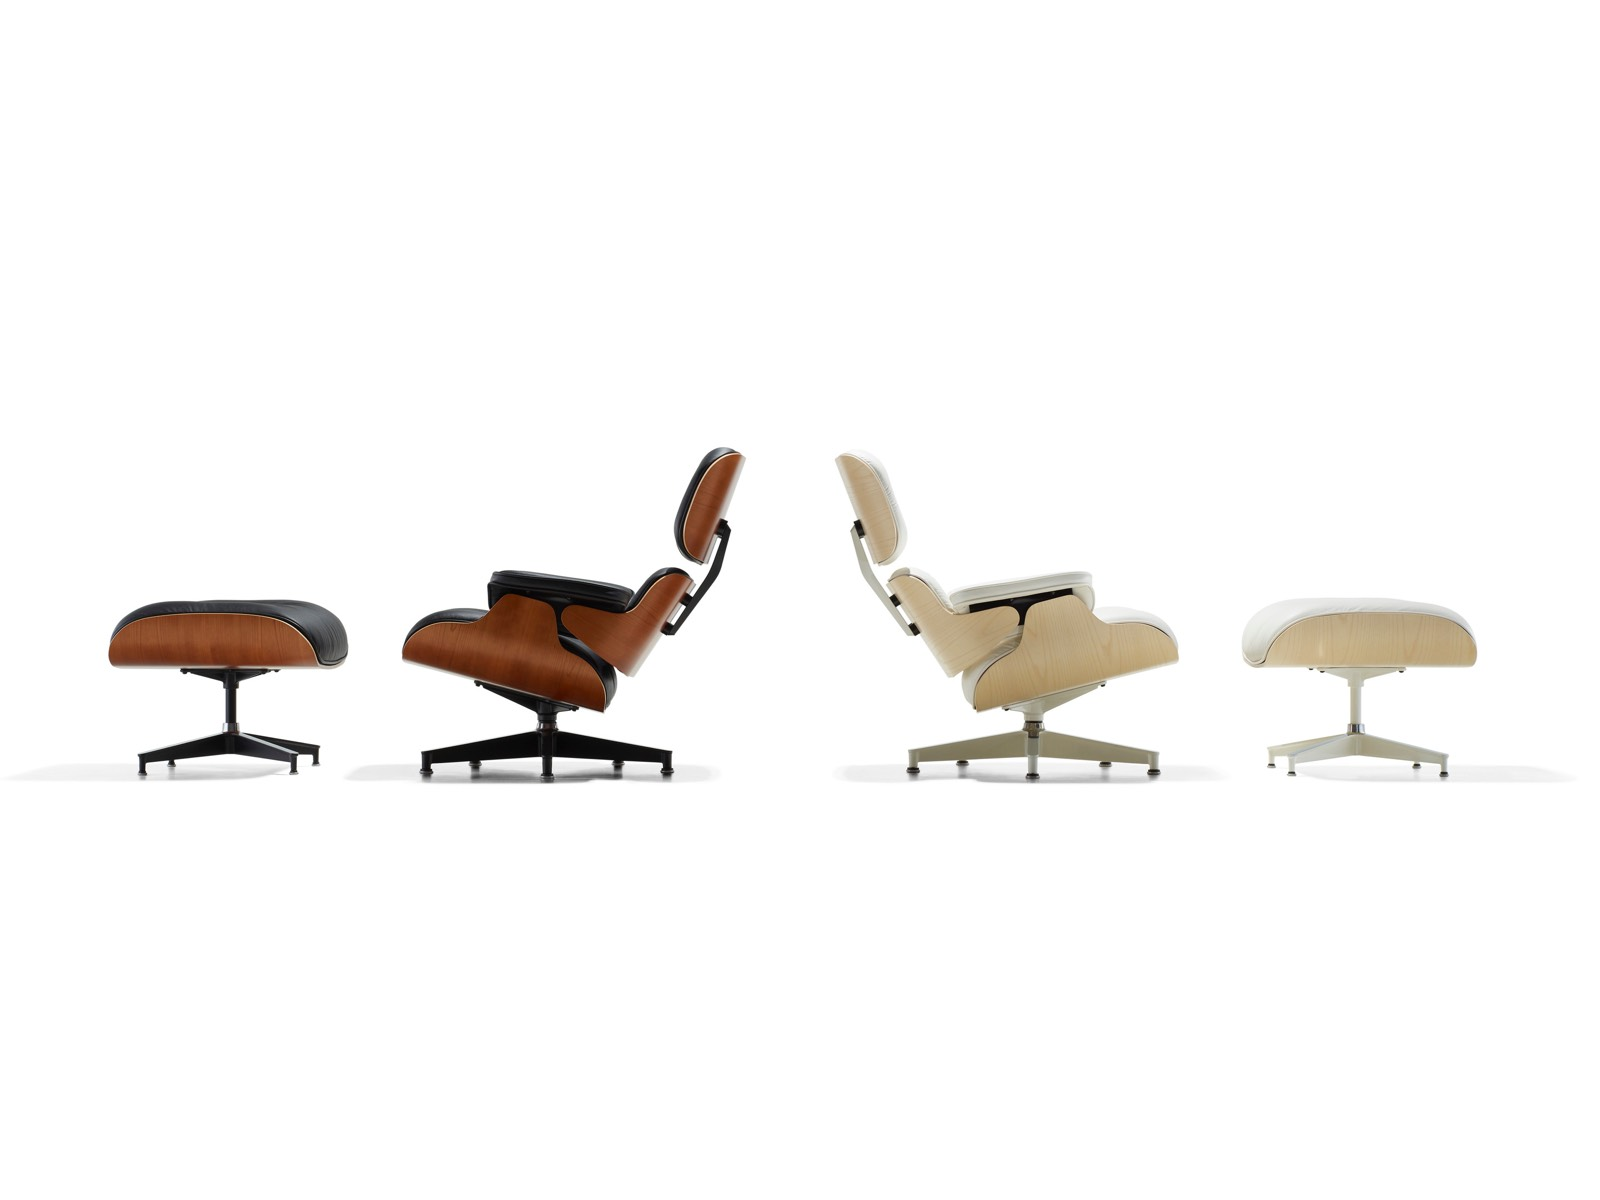 Charles & Ray Eames Sessel Eames Lounge And Ottoman Lounge Chair Herman Miller